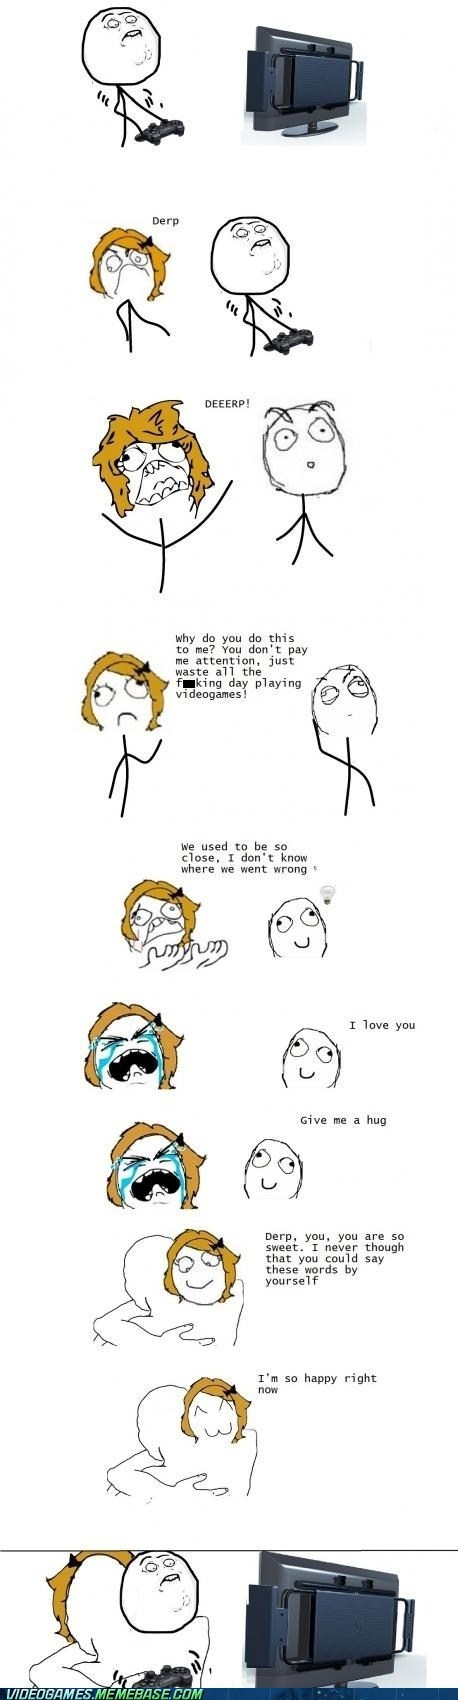 couple hug rage comic relationships